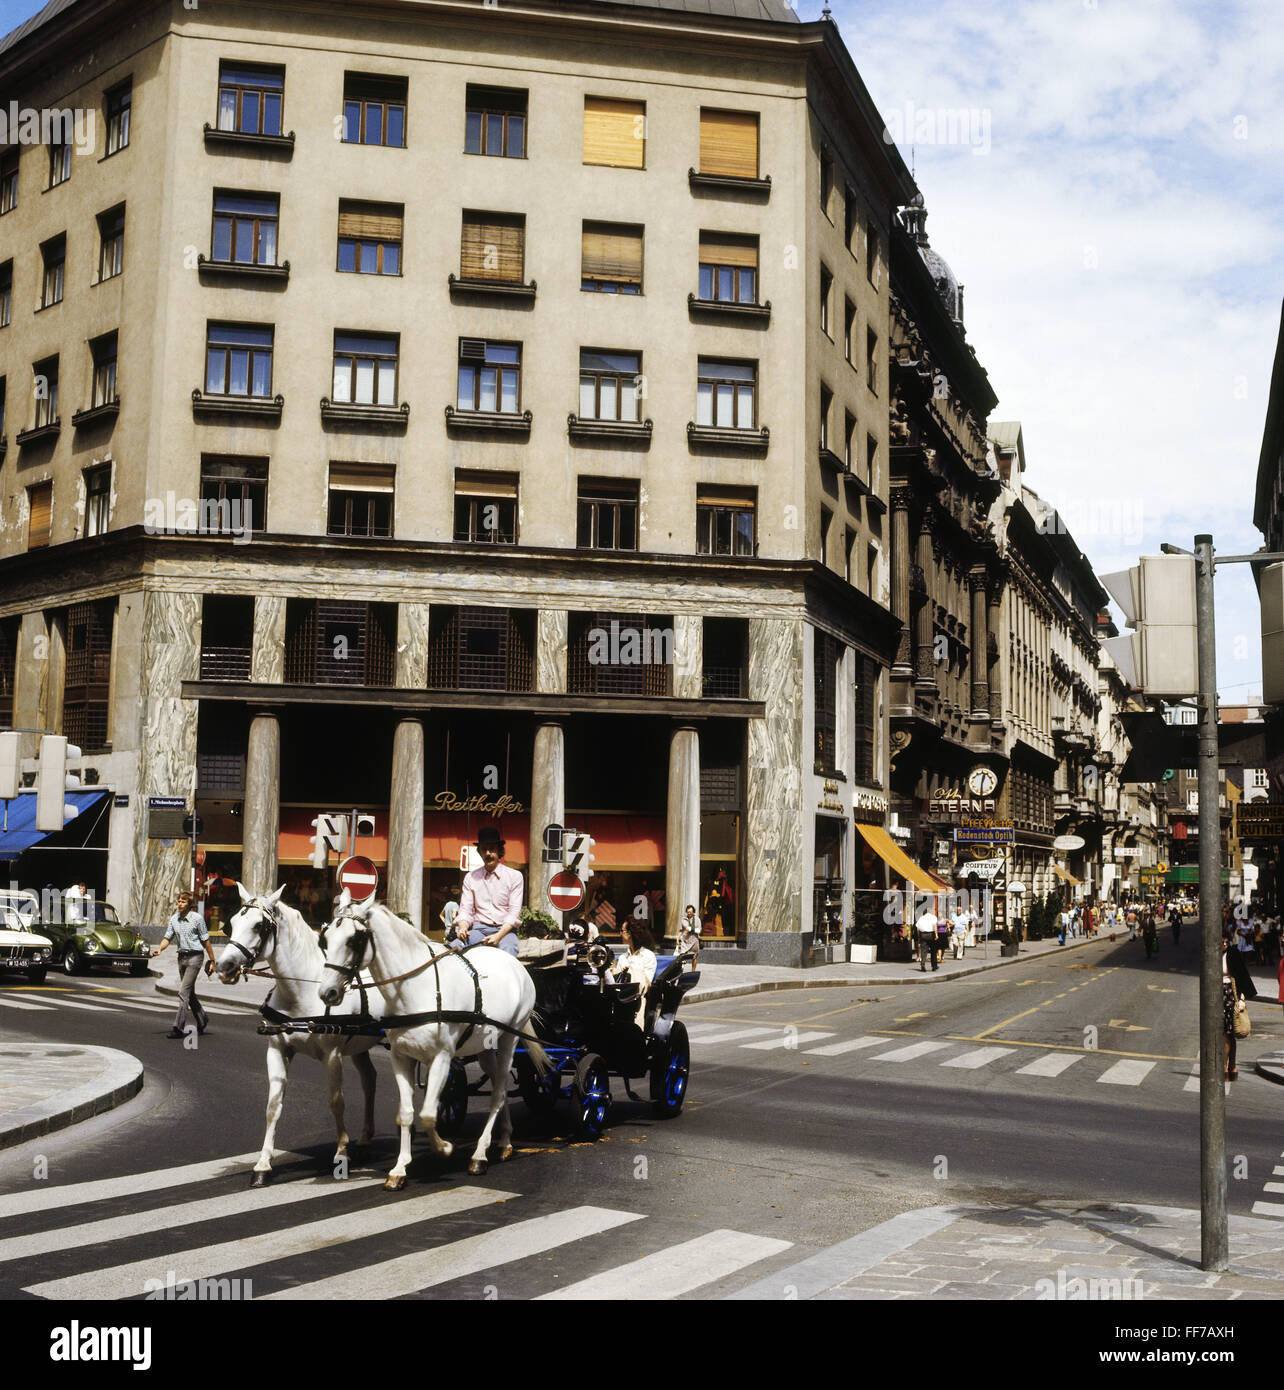 geography / travel, Austria, Vienna, street scene, hackney carriage on the Michaeler Platz, Loos House, 1970s, Additional - Stock Image